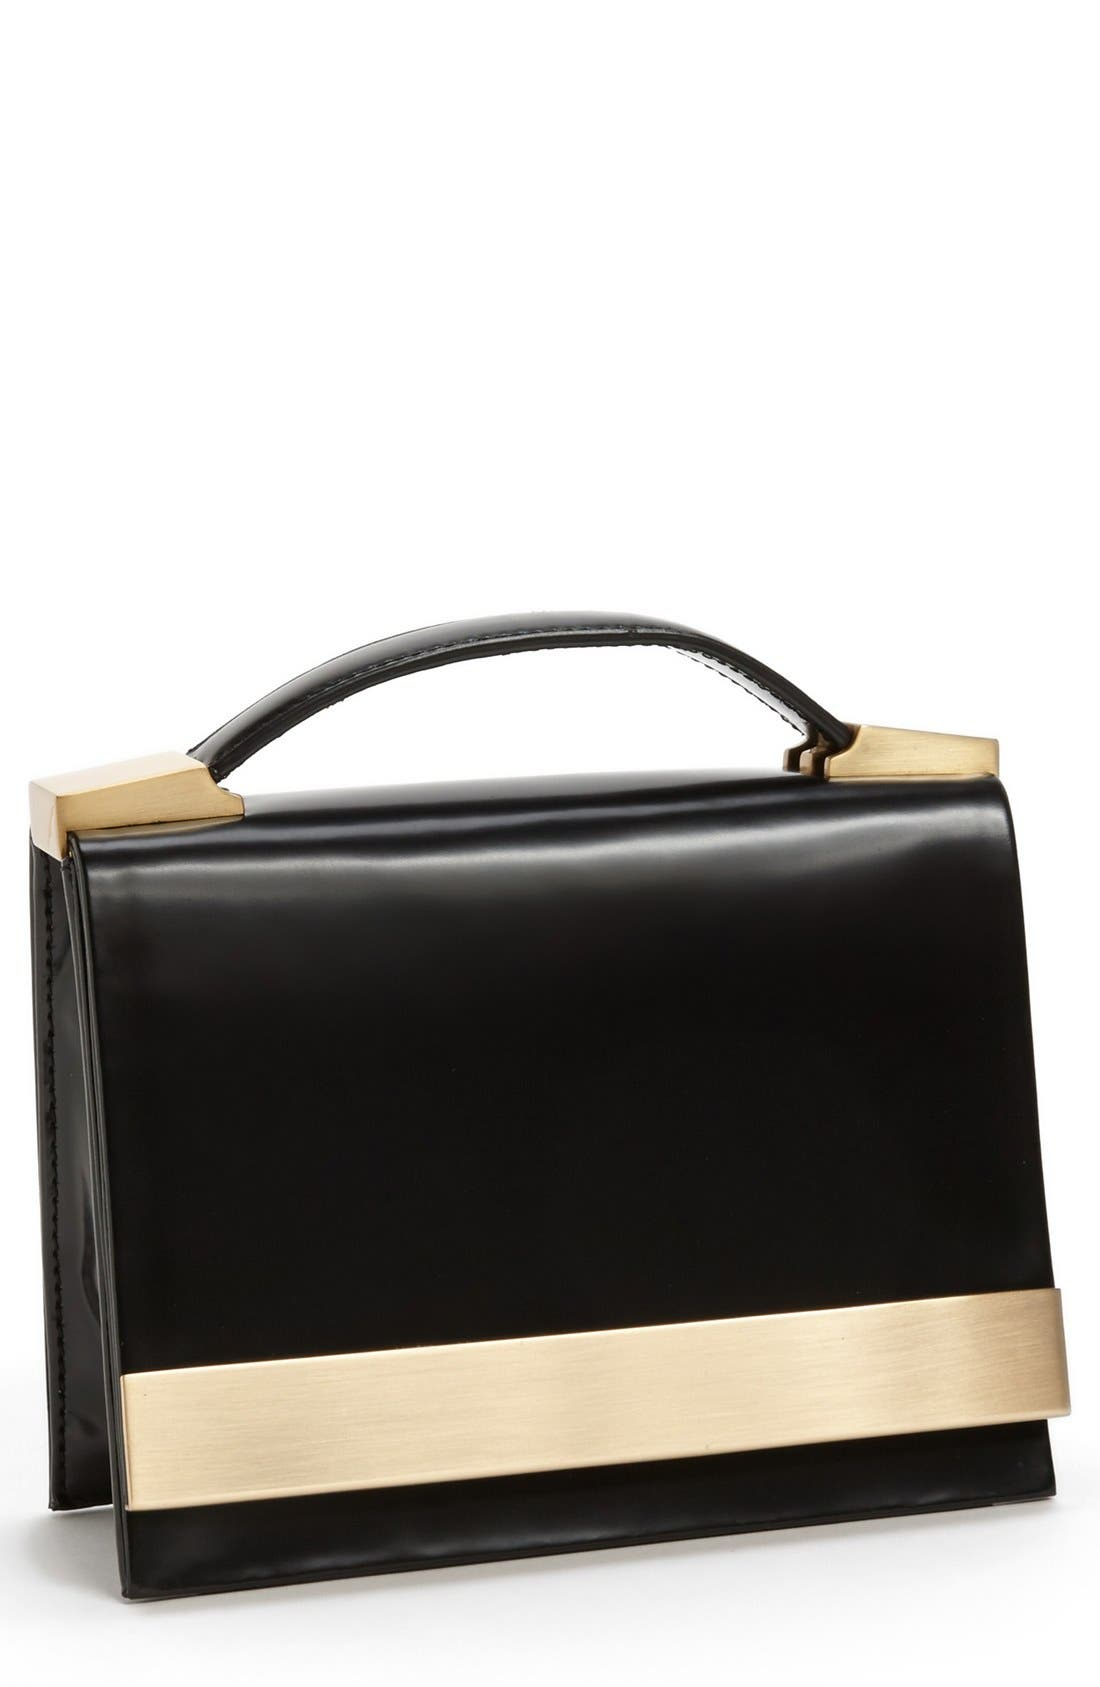 Alternate Image 1 Selected - B Brian Atwood 'Ava' Top Handle Clutch